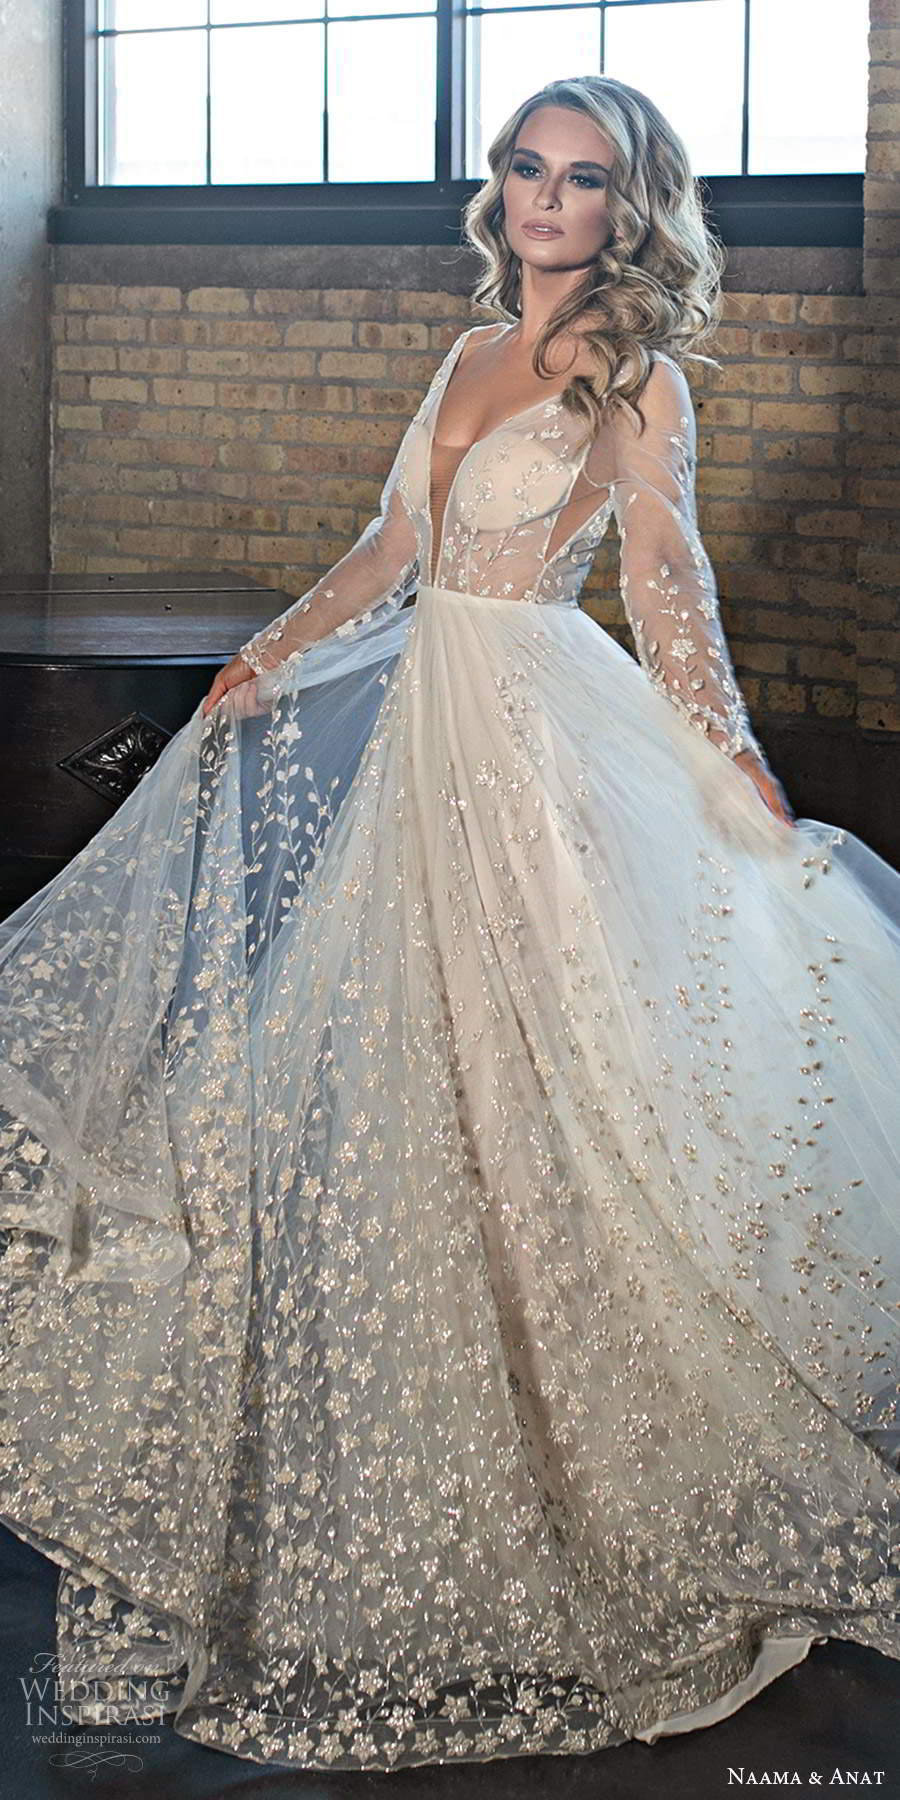 naama and anat 2020 silhouette bridal illusion long sleeves plunging v neckline heavily embellished a line ball gown wedding dress v back chapel train (4) lv